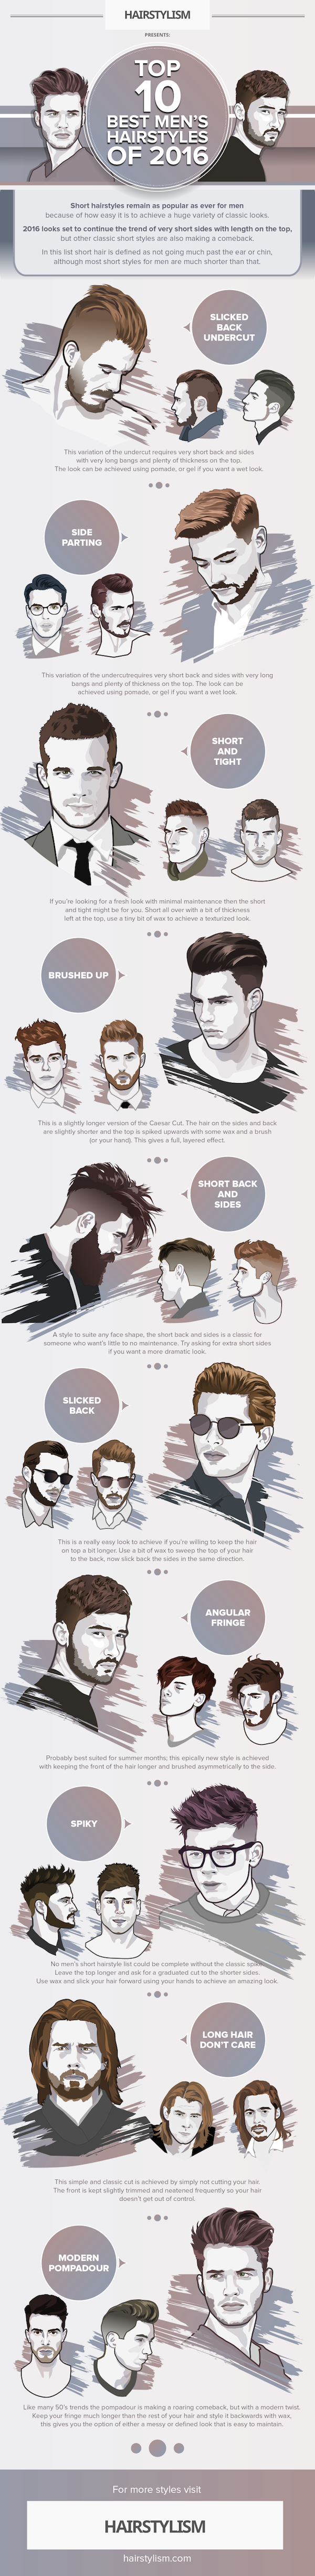 Haircut for men according to face shape the fade the trendiest hairstyle for men right now  trendy